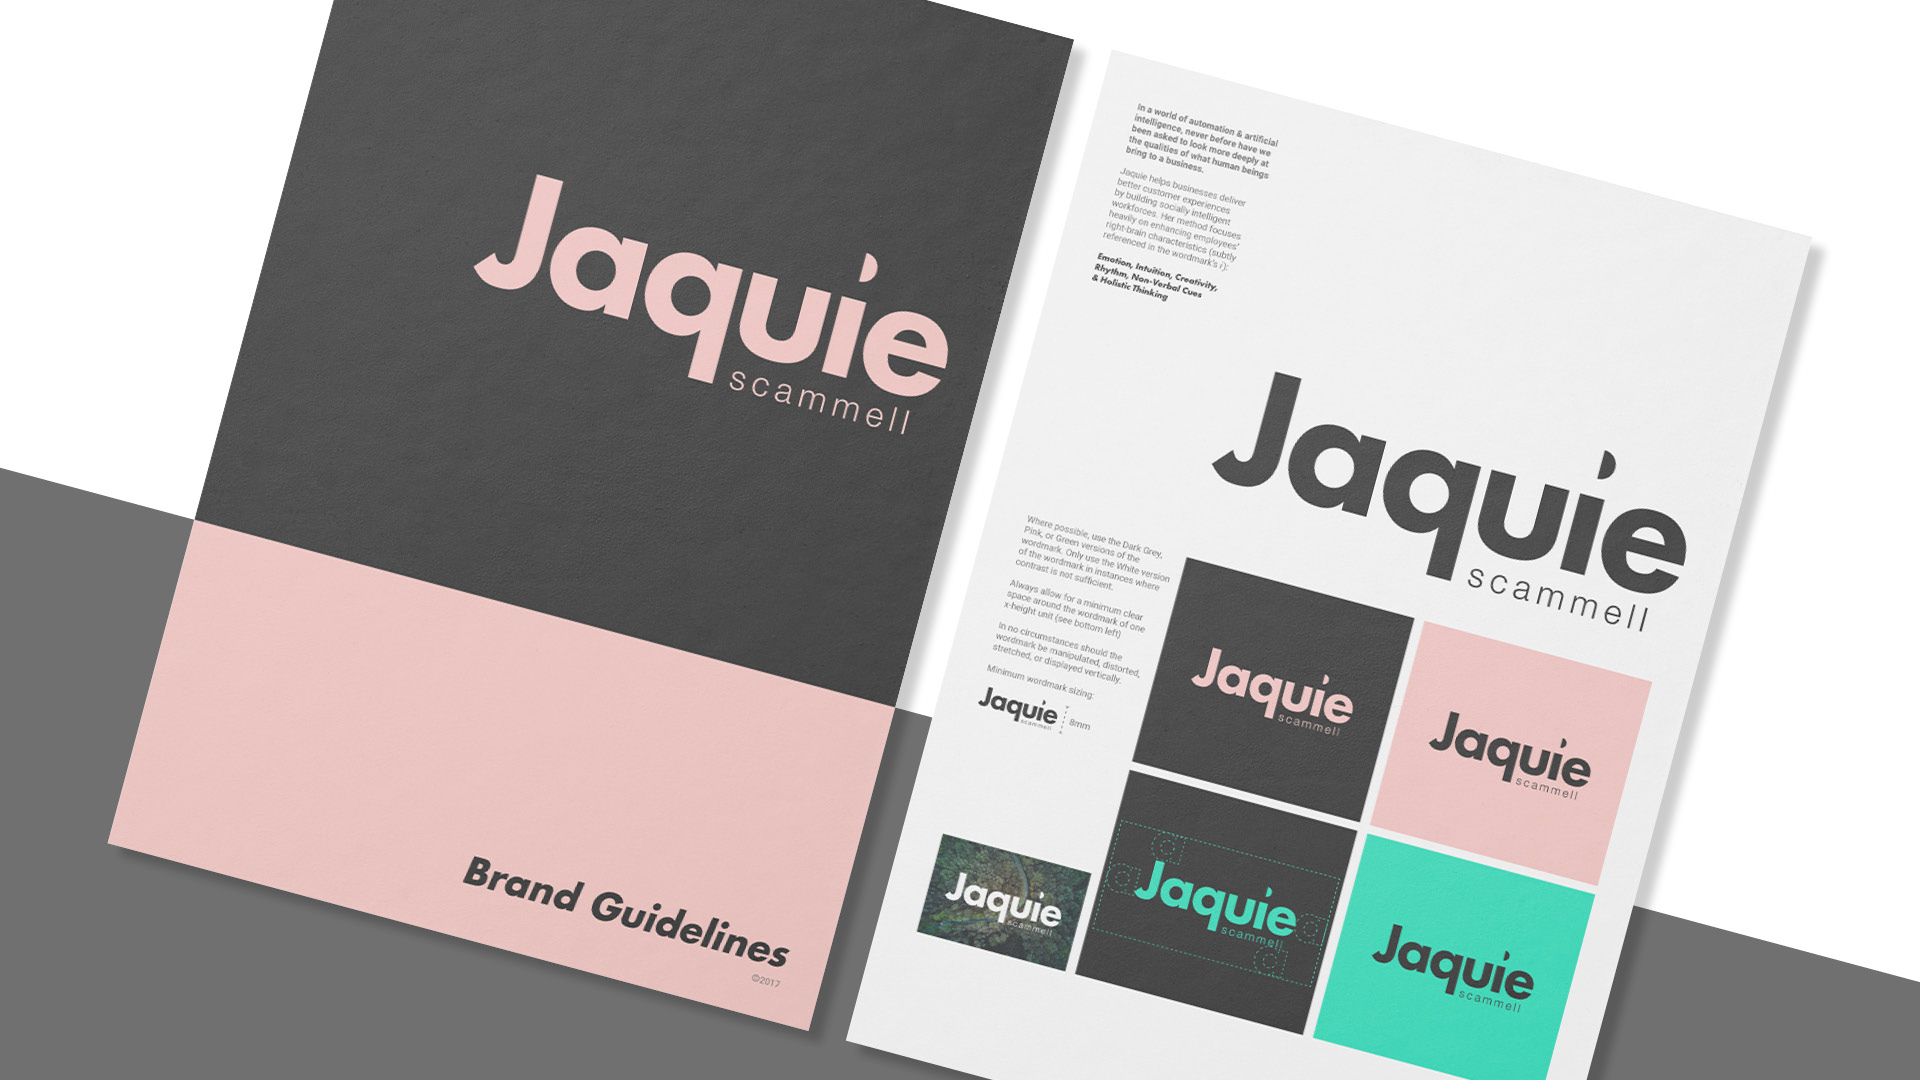 Jaquie Scammell Project Images6